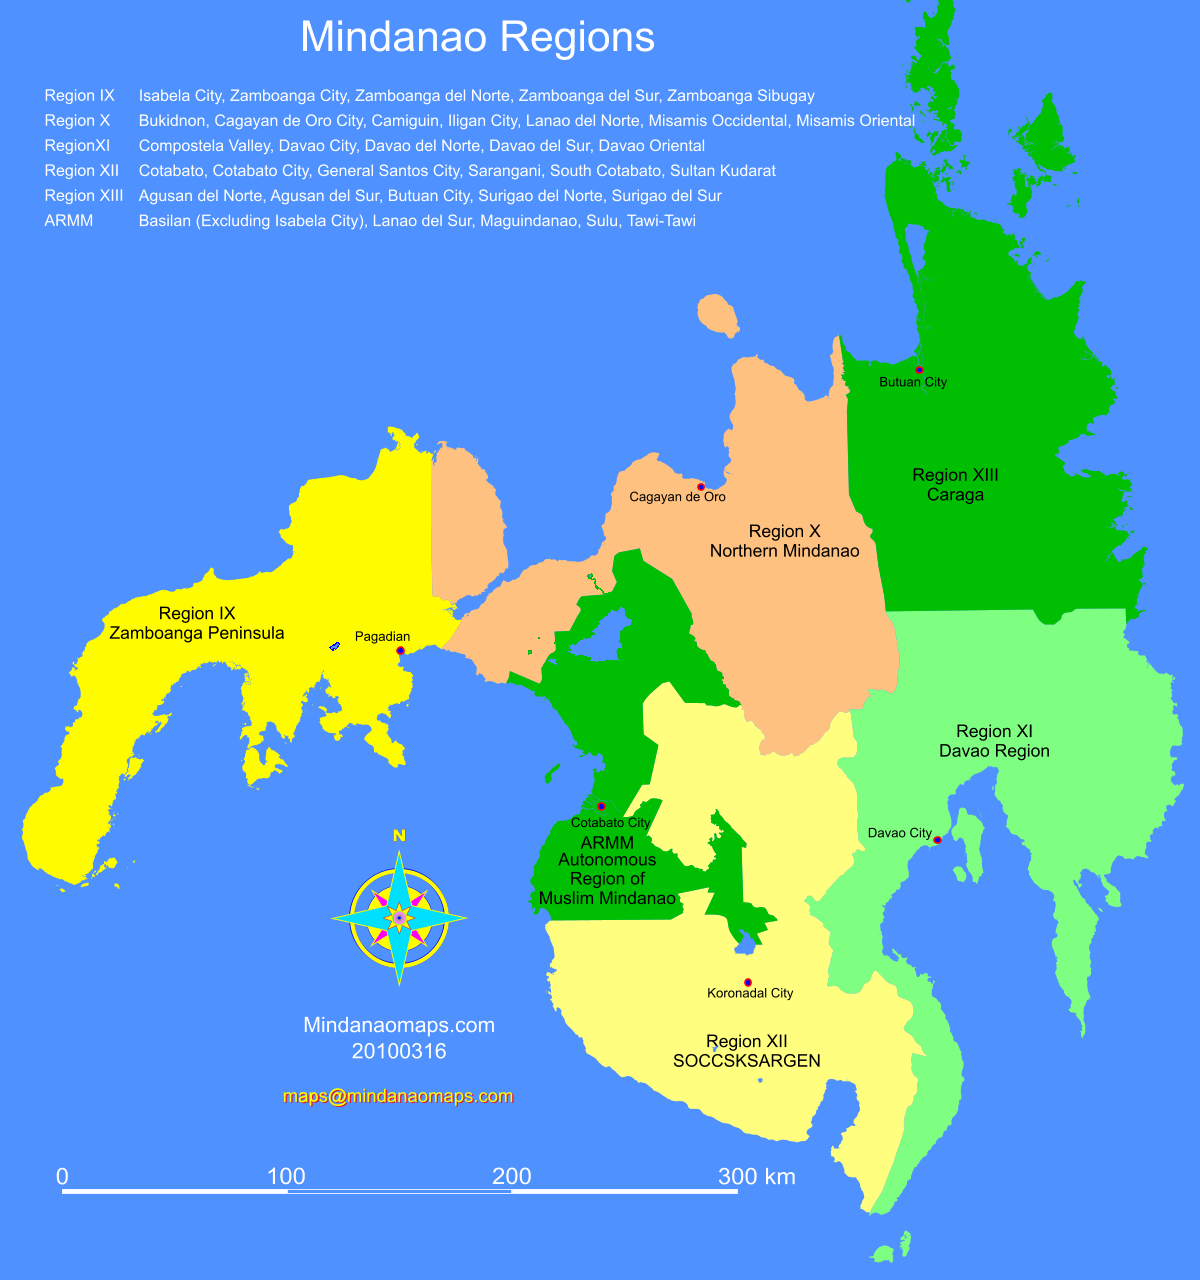 Mindanao regions mindanao maps for gumiabroncs Image collections